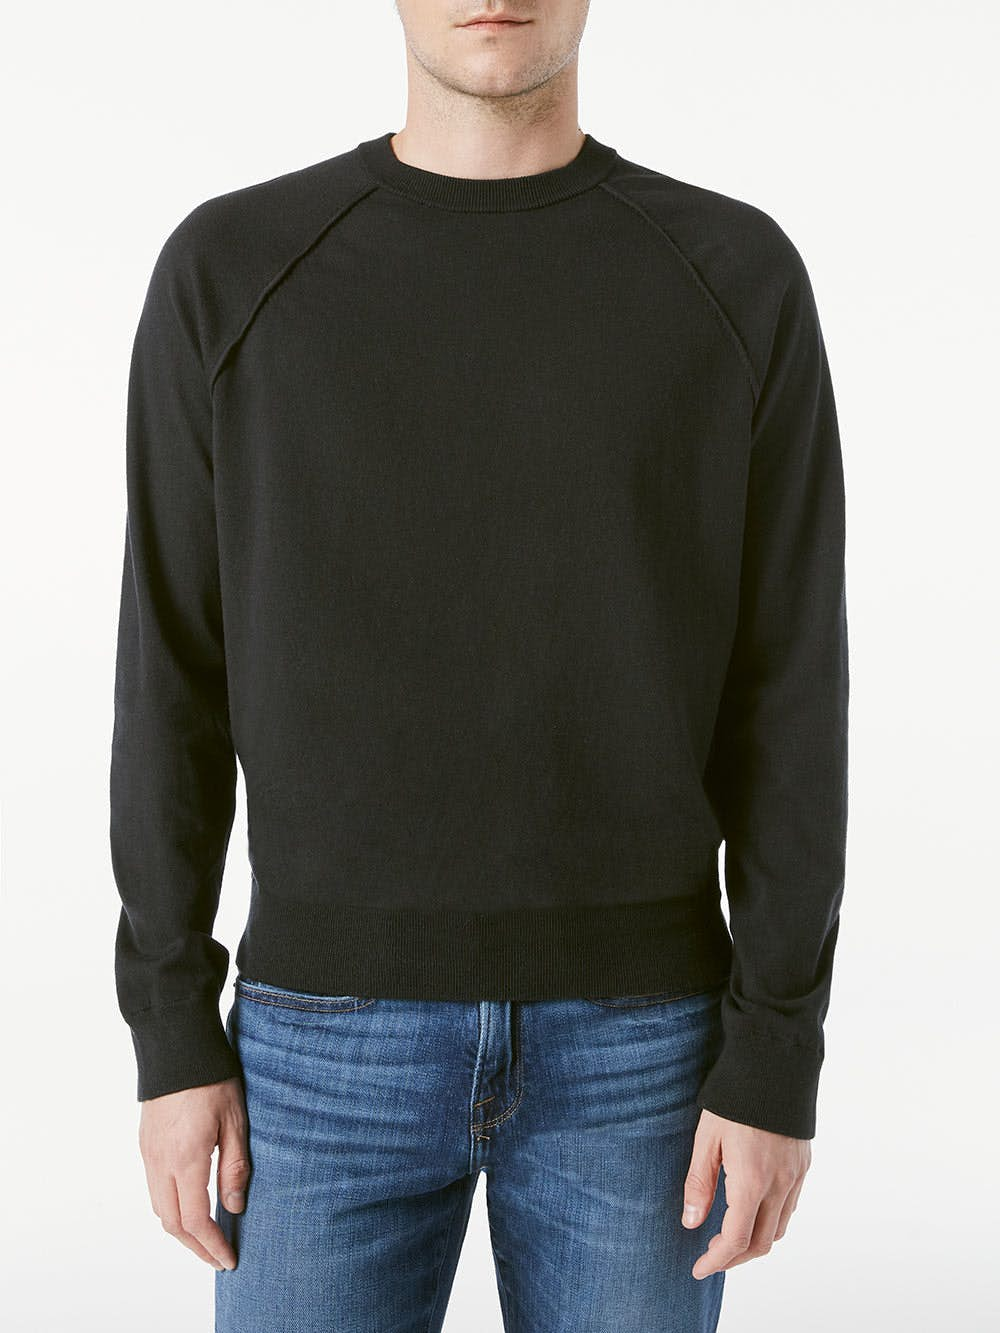 sweater front view